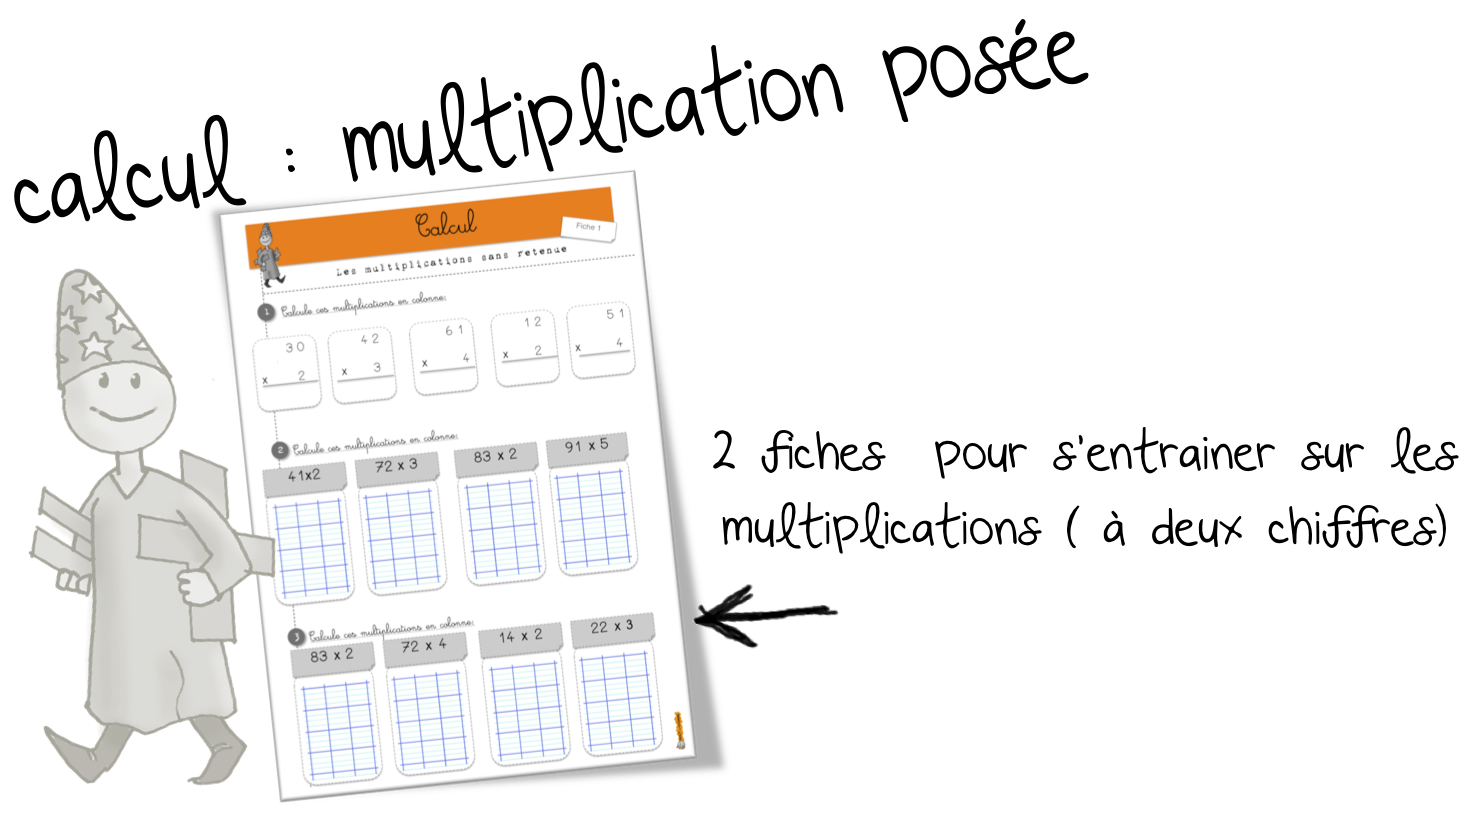 La multiplication pose exercices bout de gomme la multiplication pose altavistaventures Choice Image